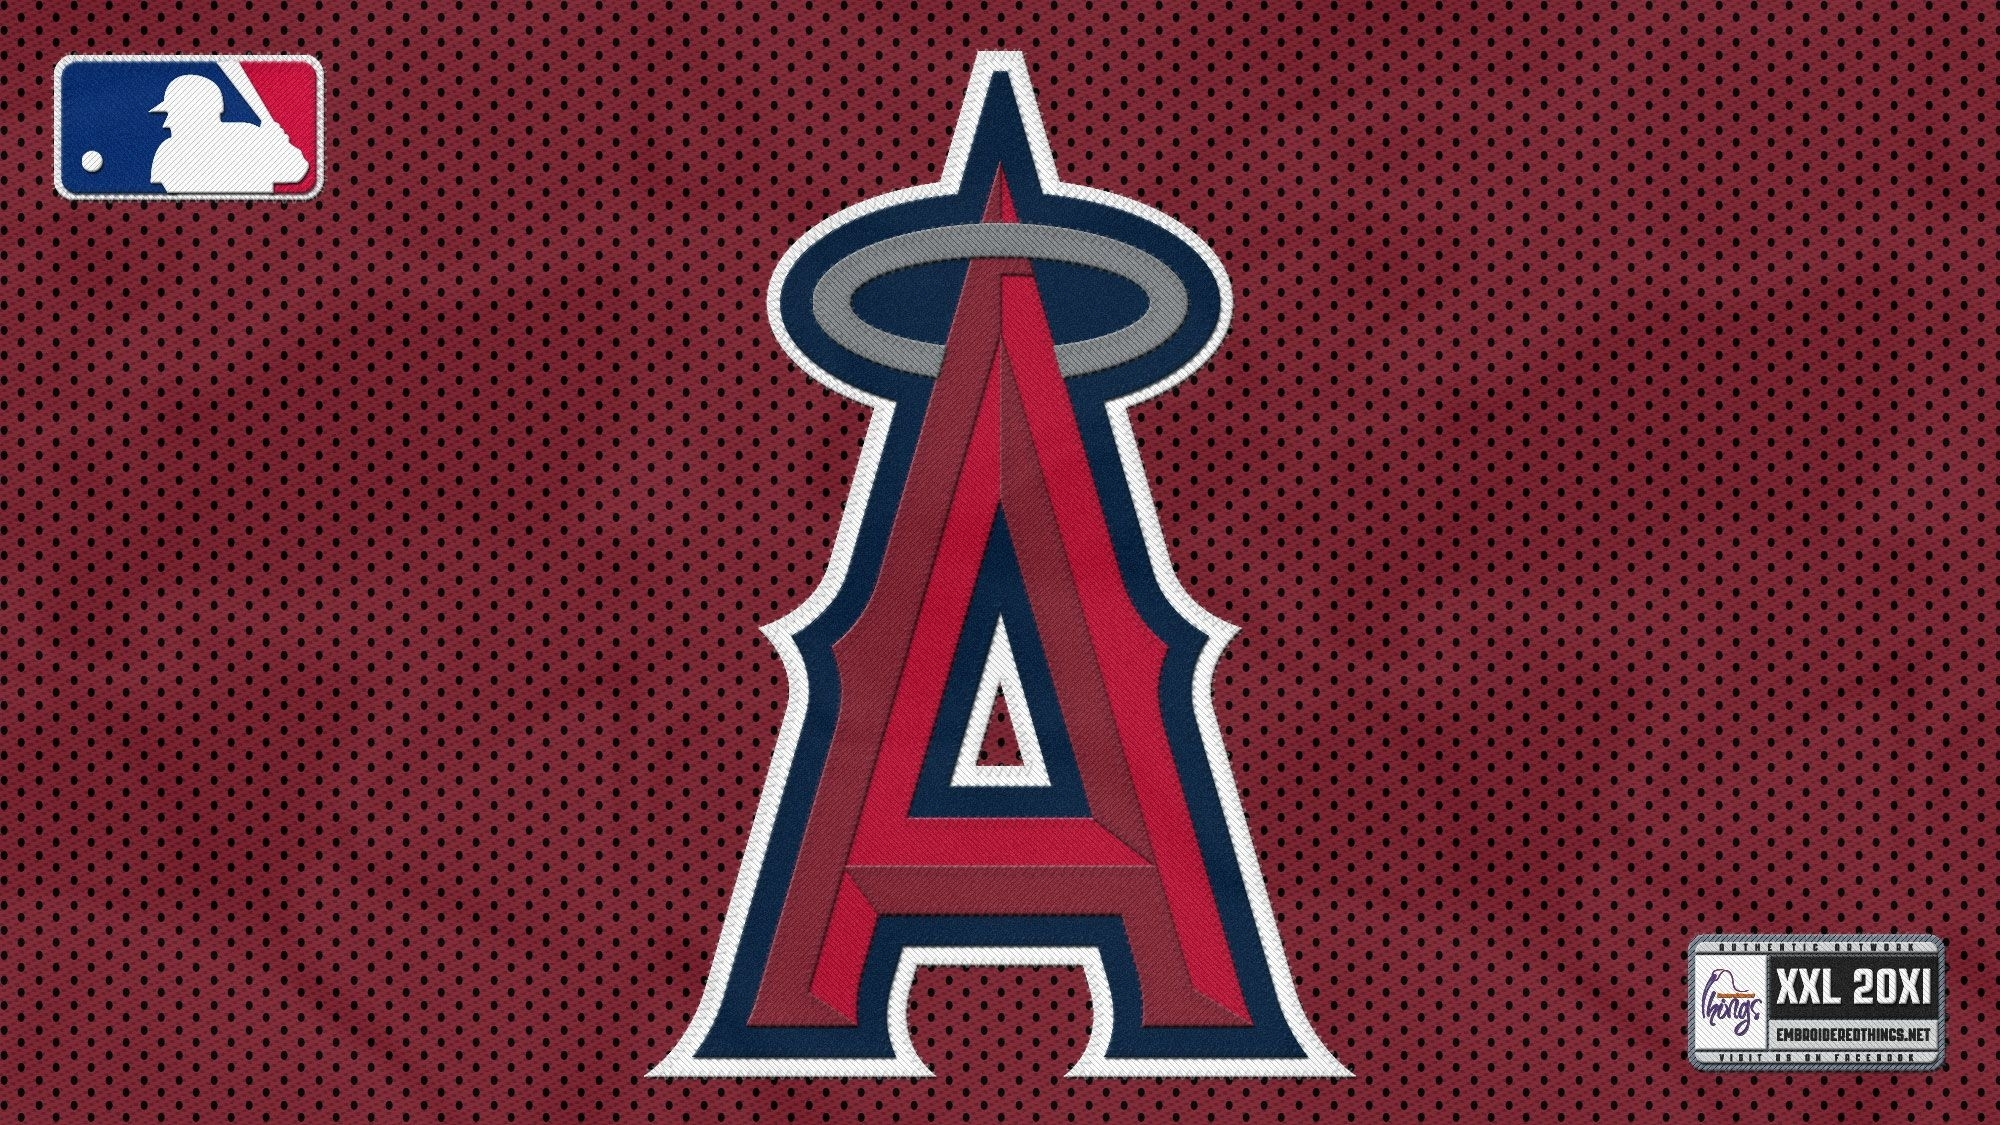 los angeles angels wallpaper desktop - wallpapersafari | all